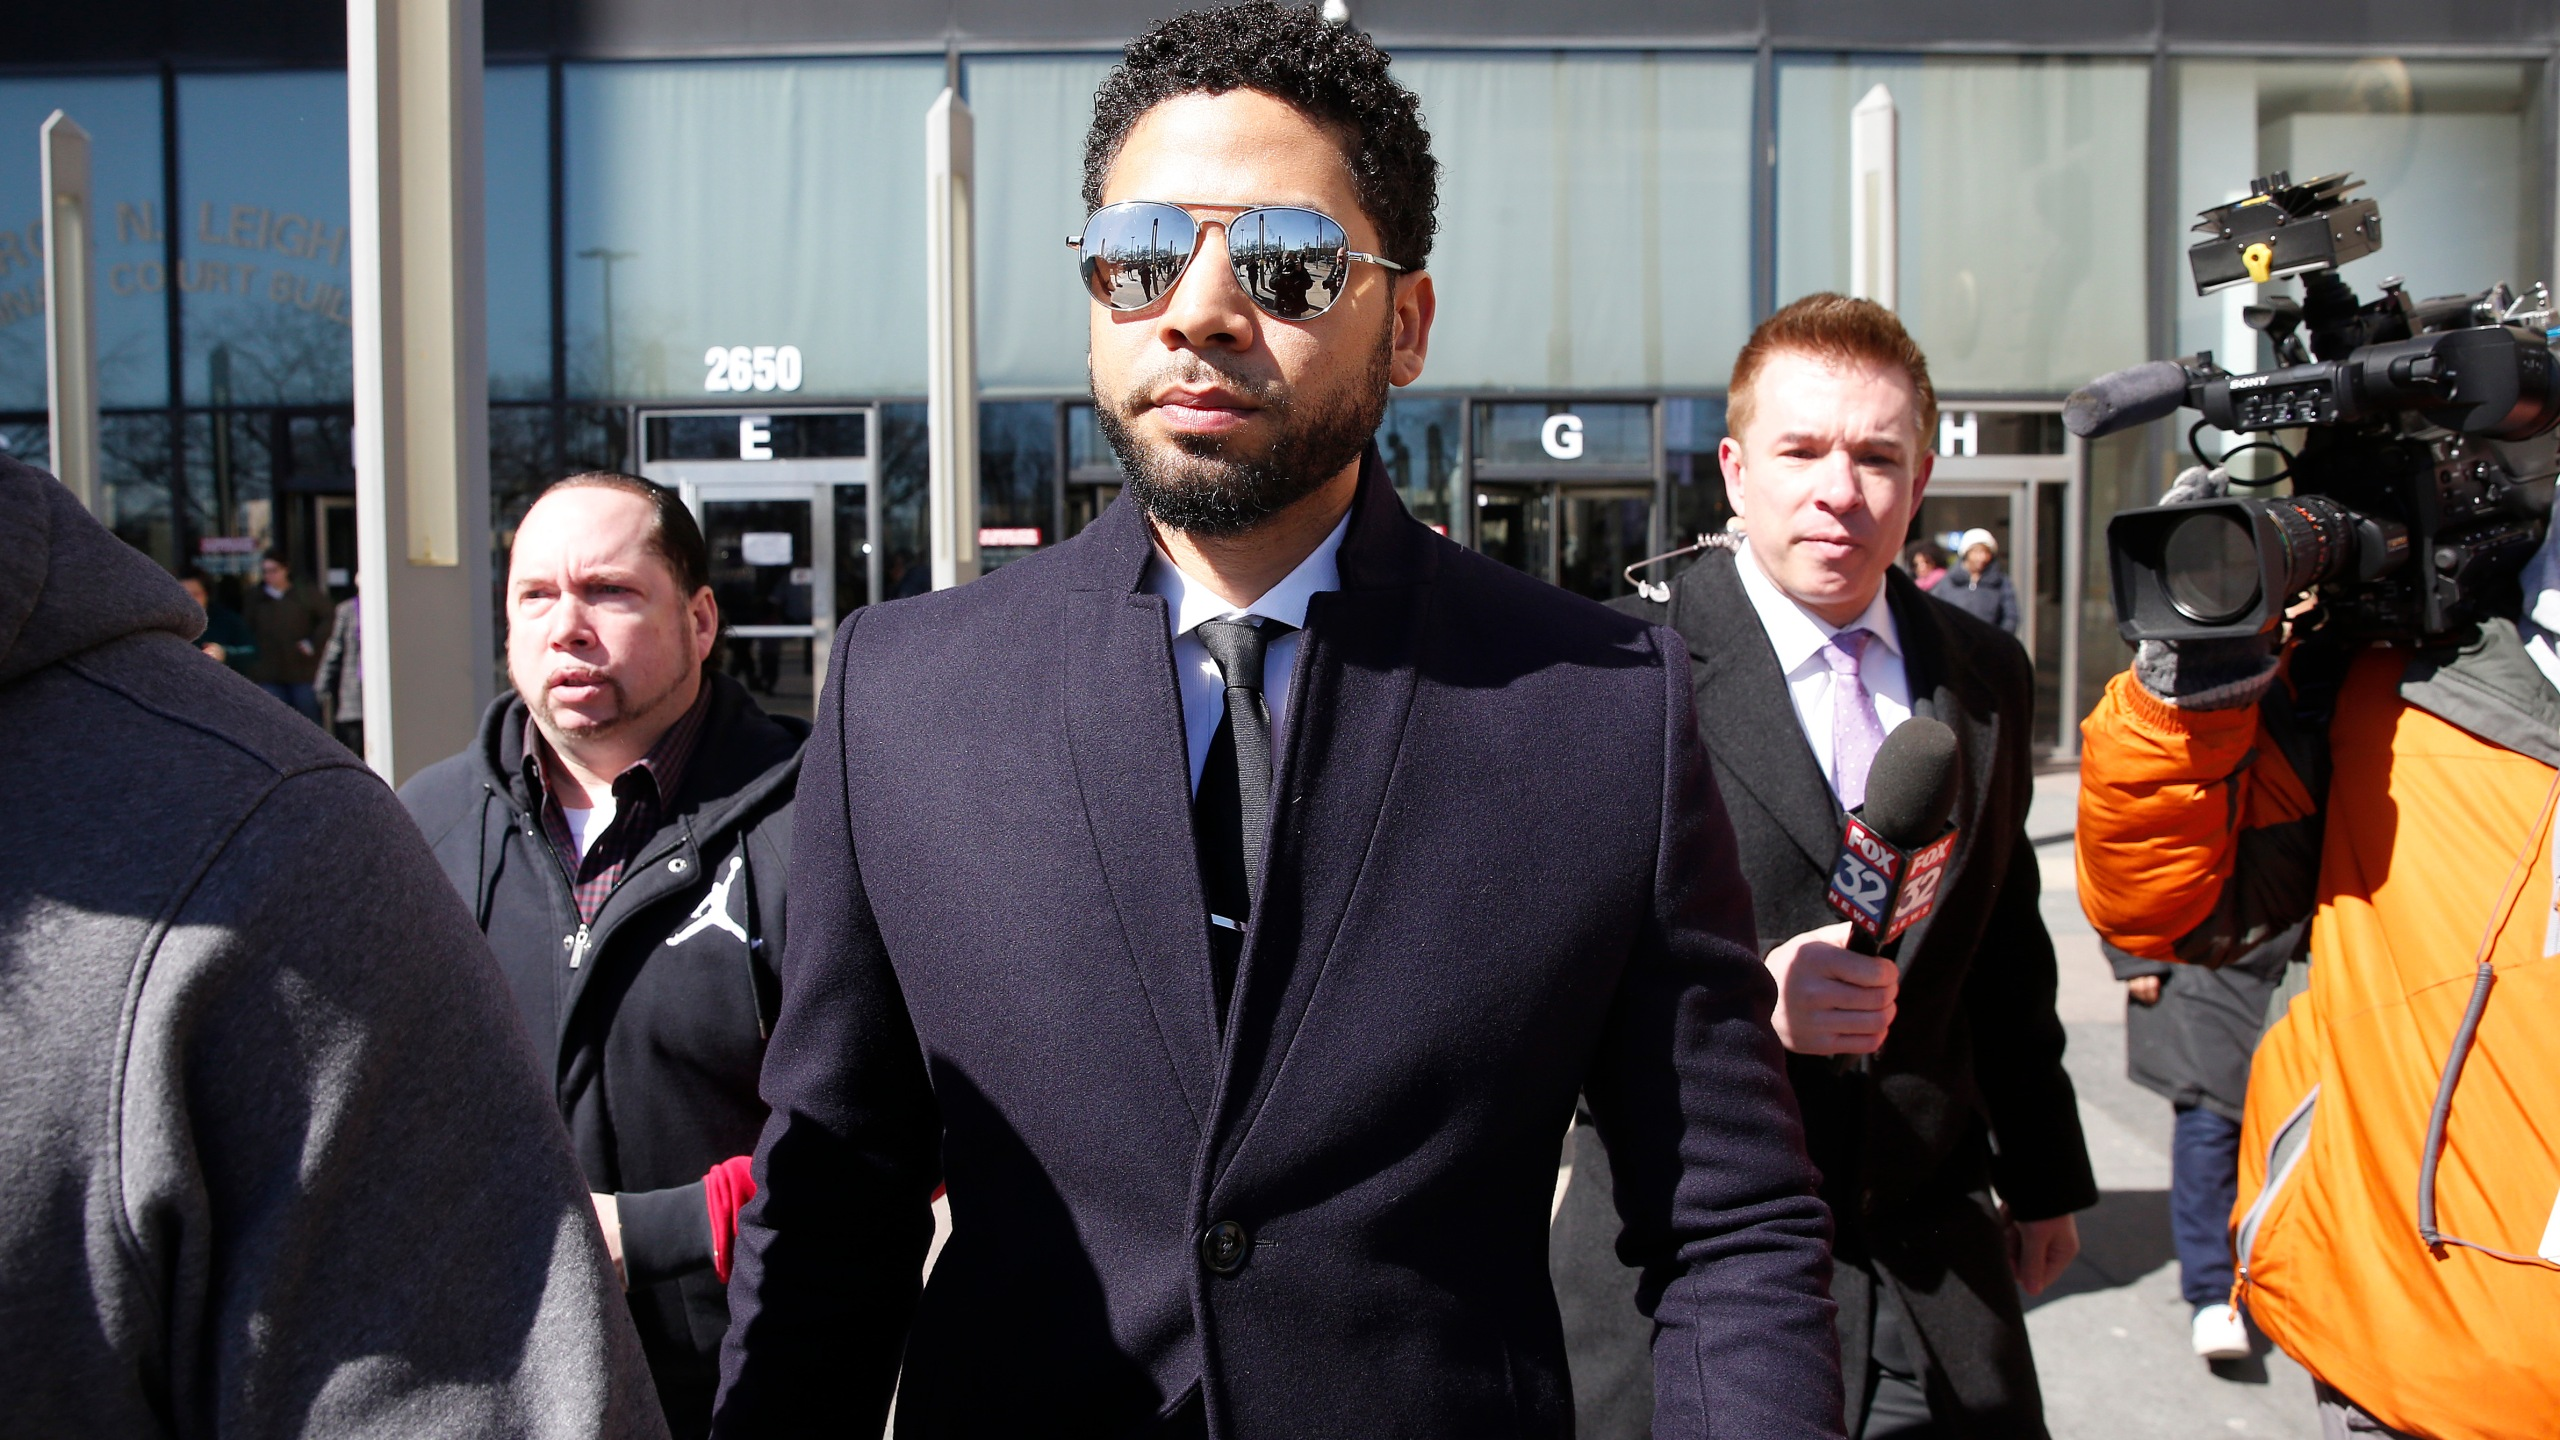 Jussie Smollett leaves the Leighton Courthouse on March 26, 2019 in Chicago, Illinois. (Credit: Nuccio DiNuzzo/Getty Images)